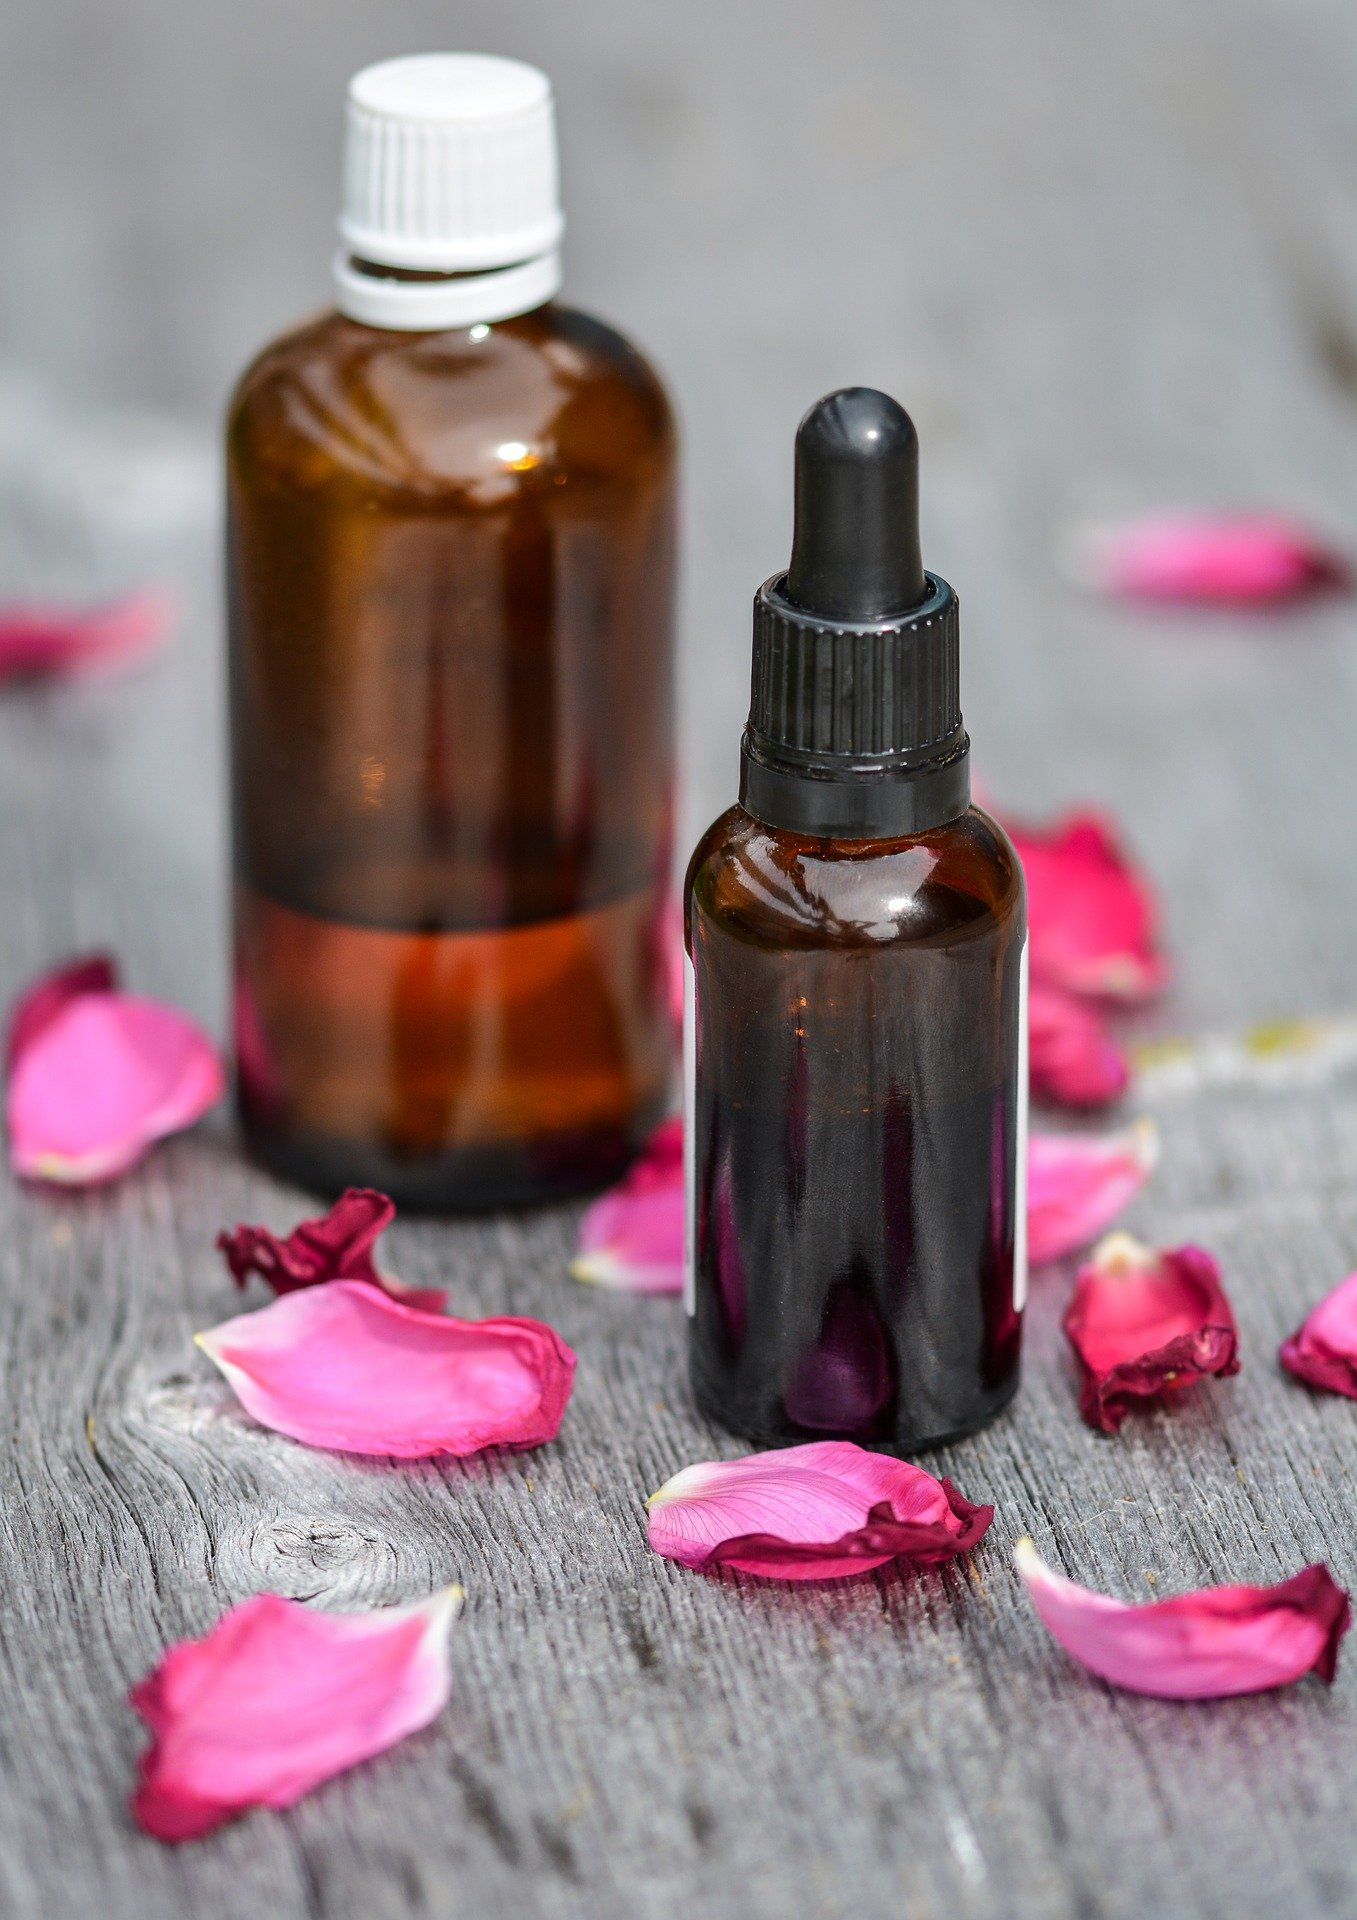 Essential Oil Safety: How To Handle Them Correctly